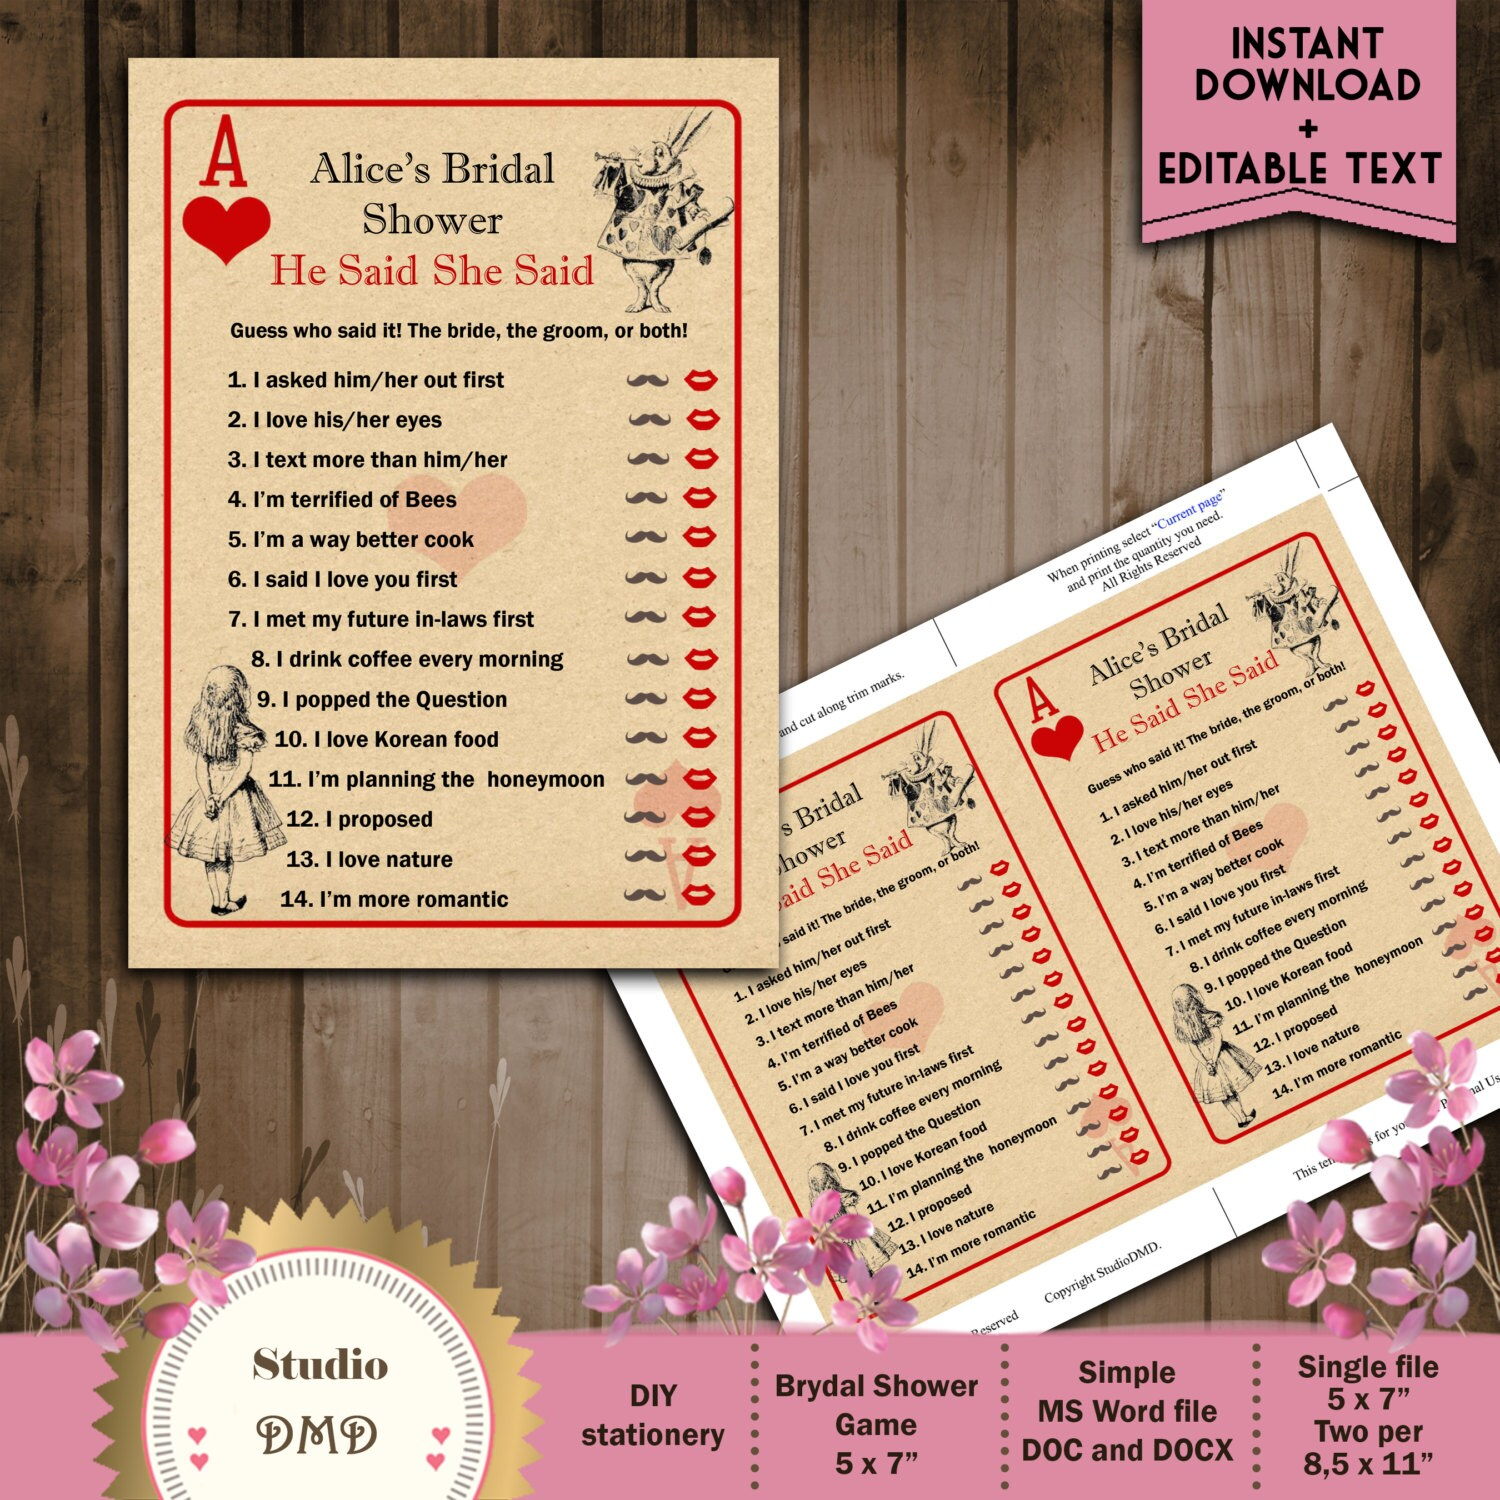 He Said She Said Printable Bridal Shower Game Alice in